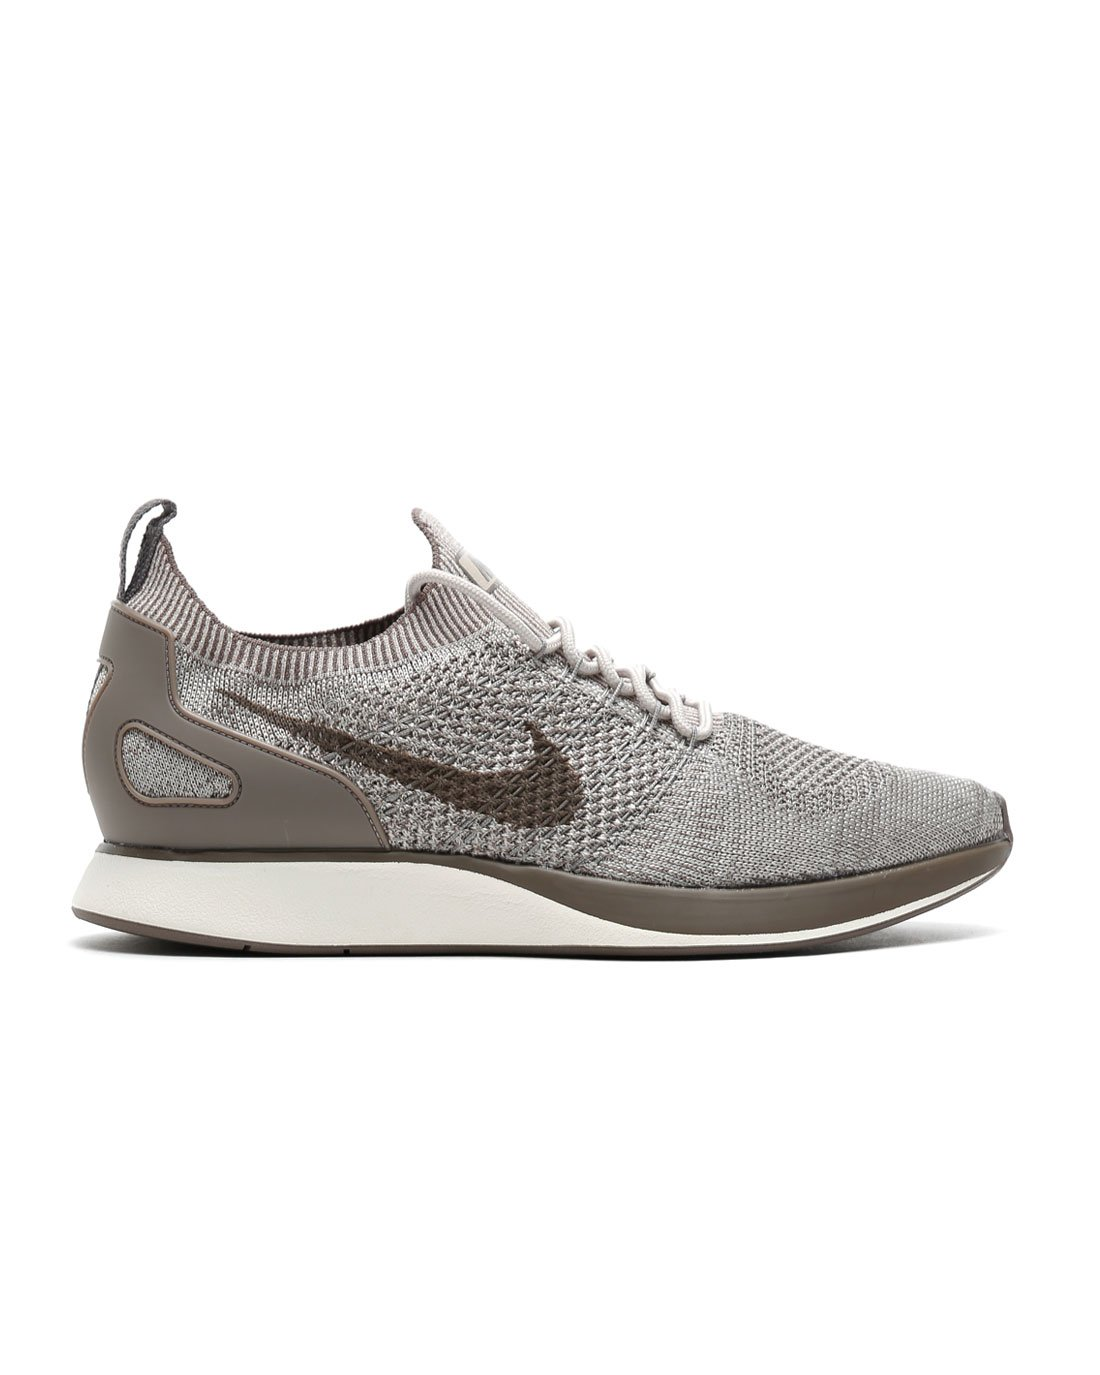 1fceaa43a2bf Galleon - NIKE Zoom Mariah Flyknit Racer Mens Running Trainers 918264  Sneakers Shoes (UK 6 US 7 EU 40